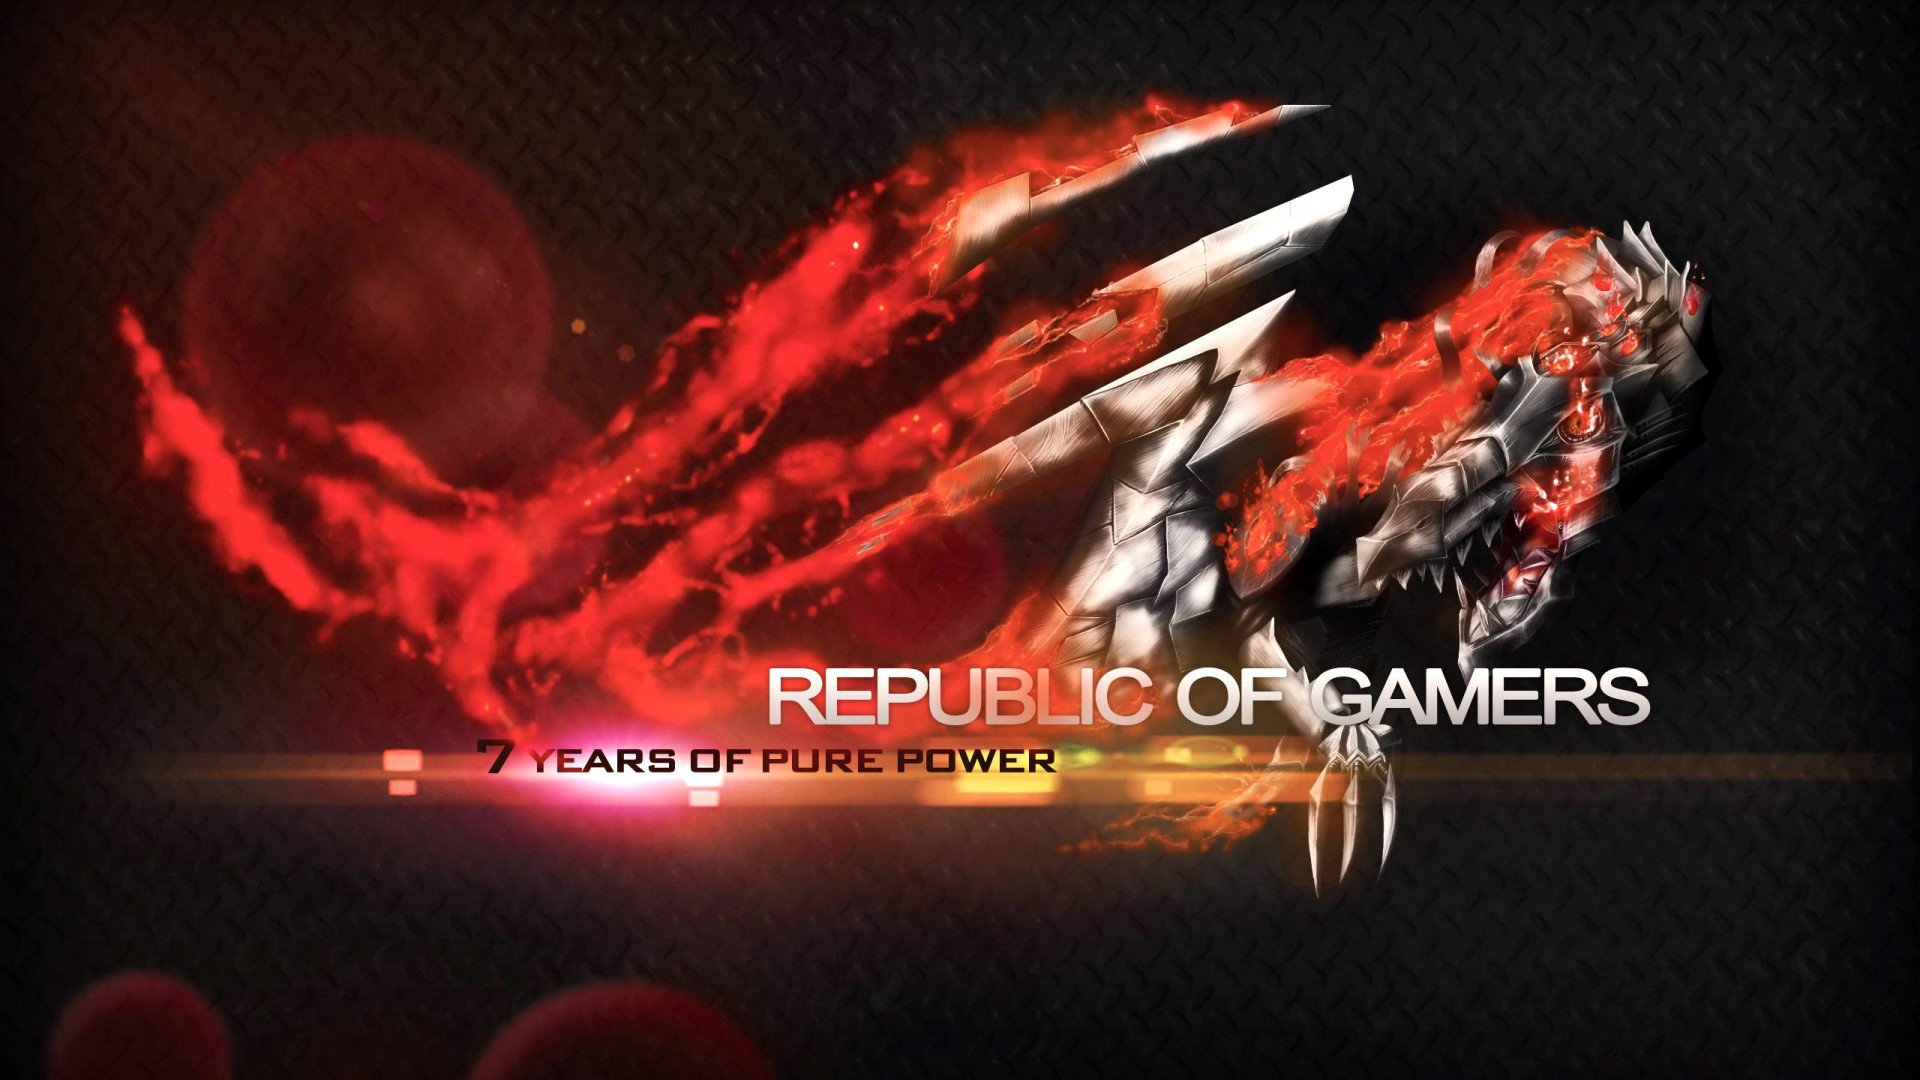 ASUS REPUBLIC GAMERS computer game wallpaper 1920x1080 398216 1920x1080